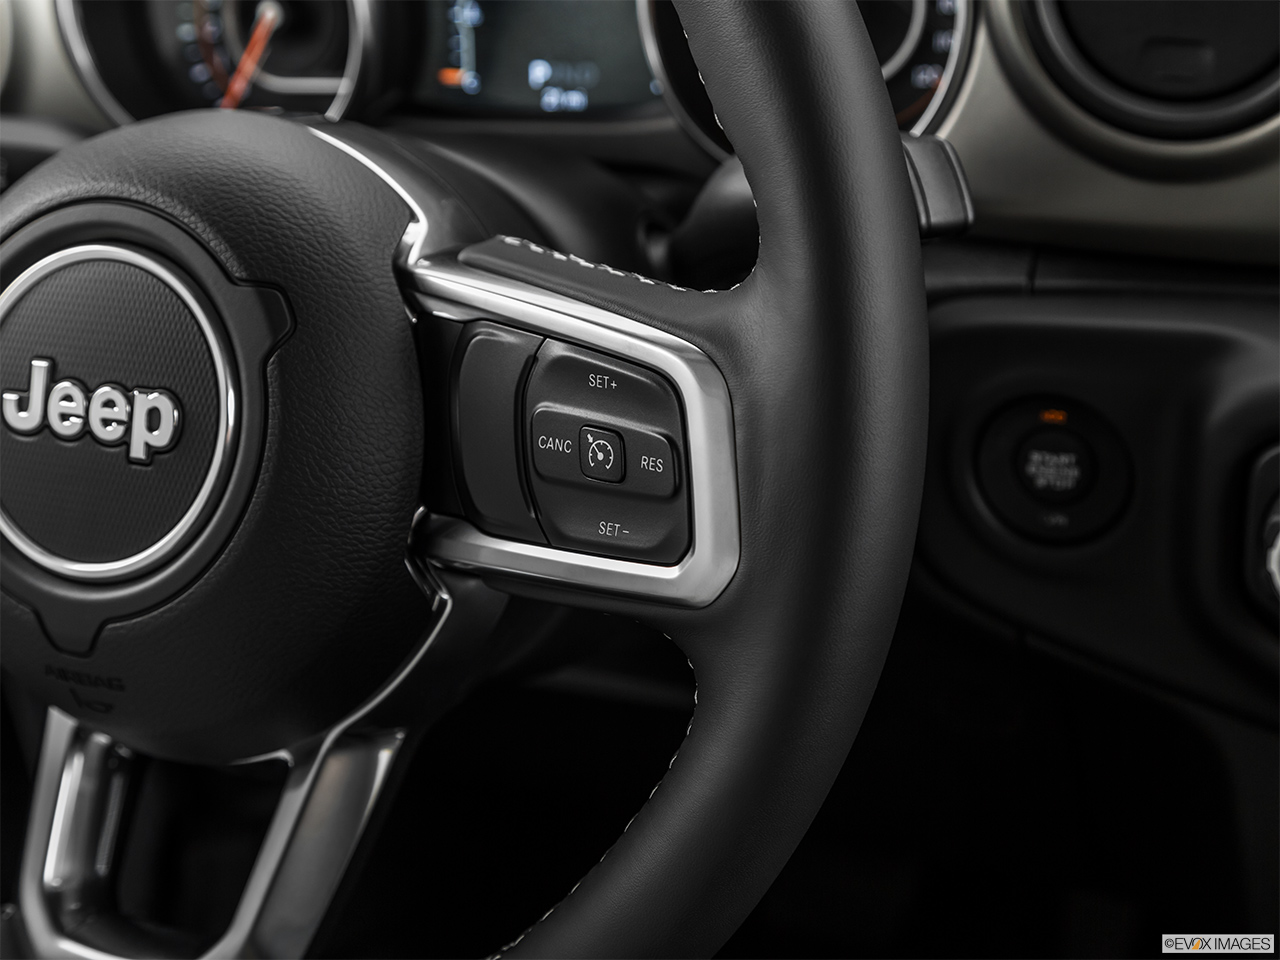 2020 Jeep Gladiator Sport S Steering Wheel Controls (Right Side)